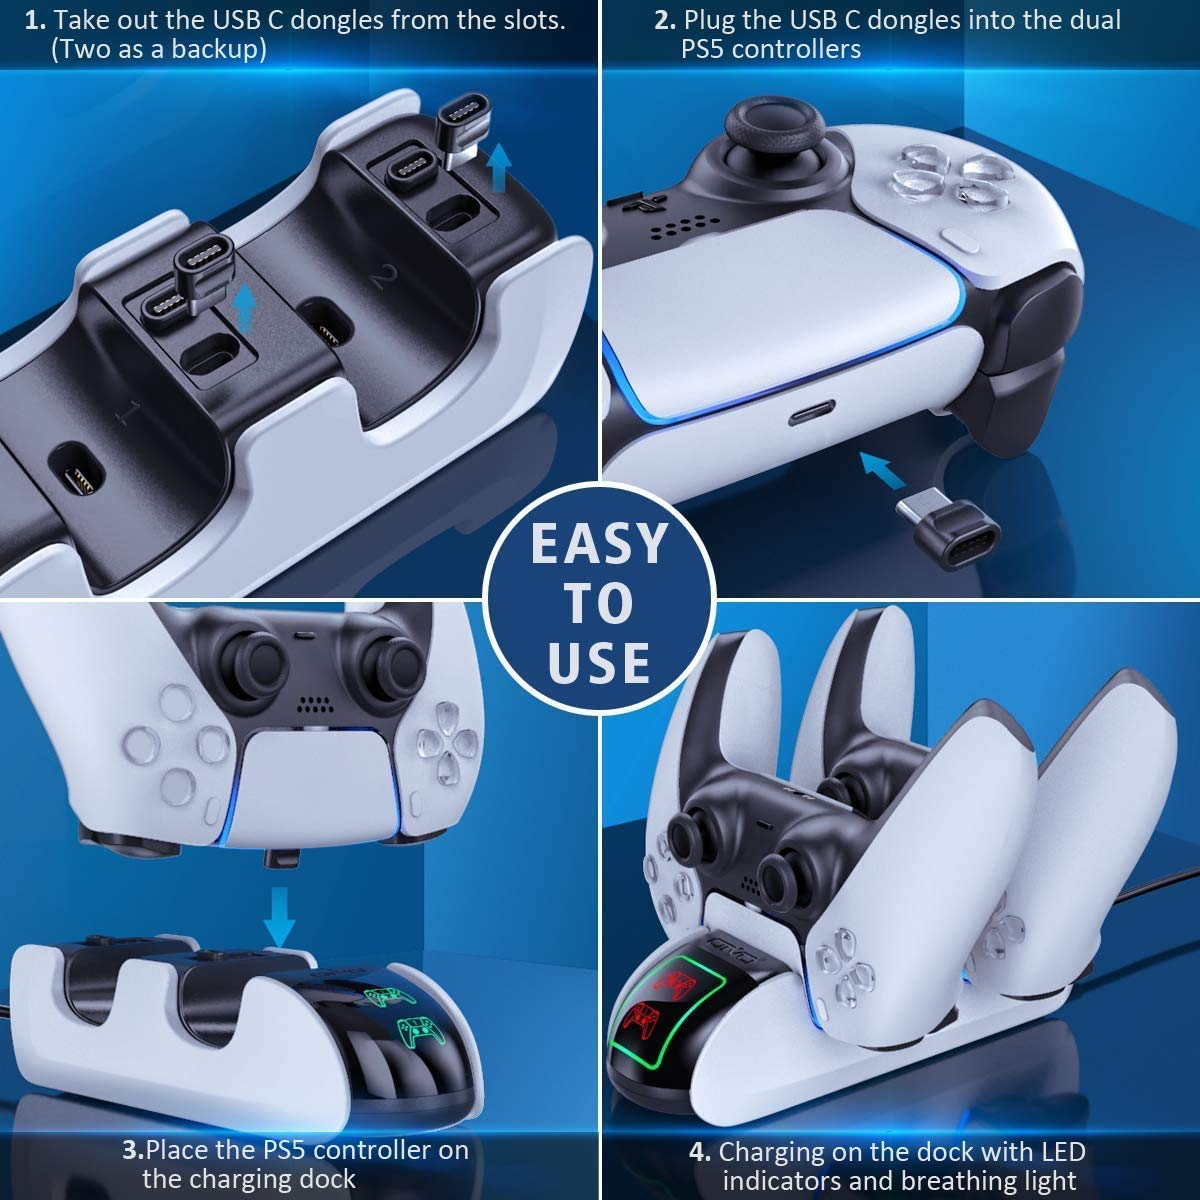 PS5 Controller Charging Station for PlayStation 5 Console, DualSense PS5 Controllers, Twin Docking Wireless Charger, PS5 Accessories Solution With 4 USB-C Adapter, Upgraded LED Strap & indicators